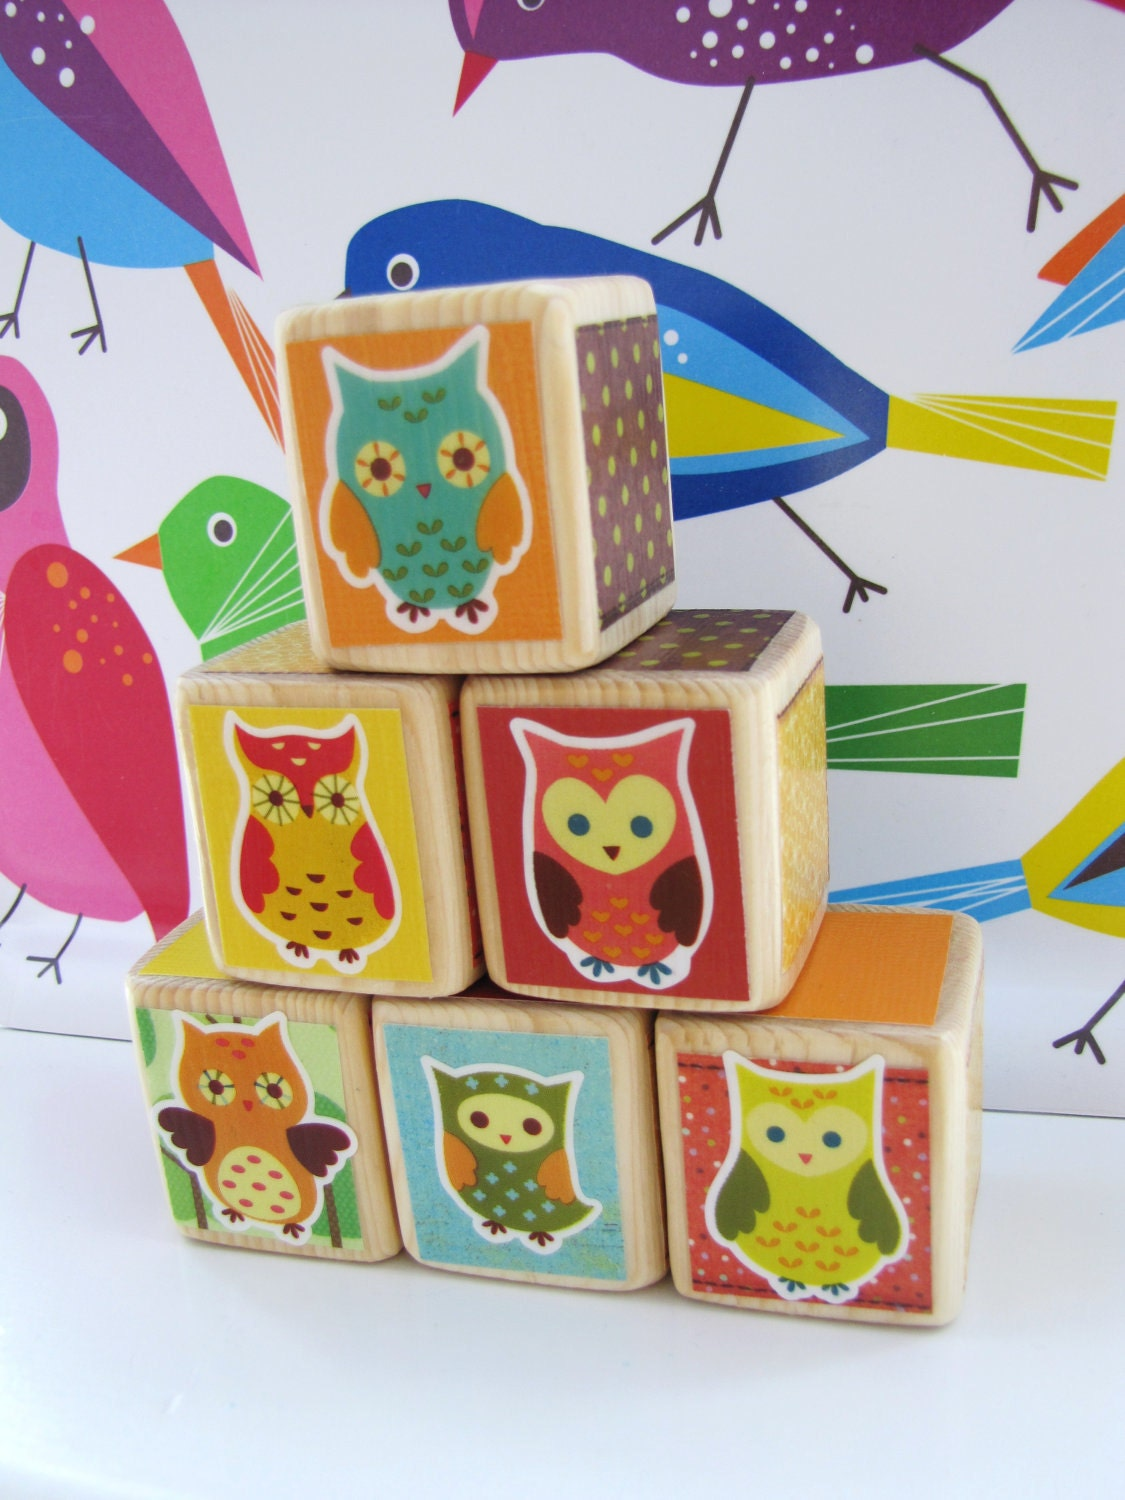 Owl nursery decor baby shower decoration by miabooo on etsy for Baby owl decoration